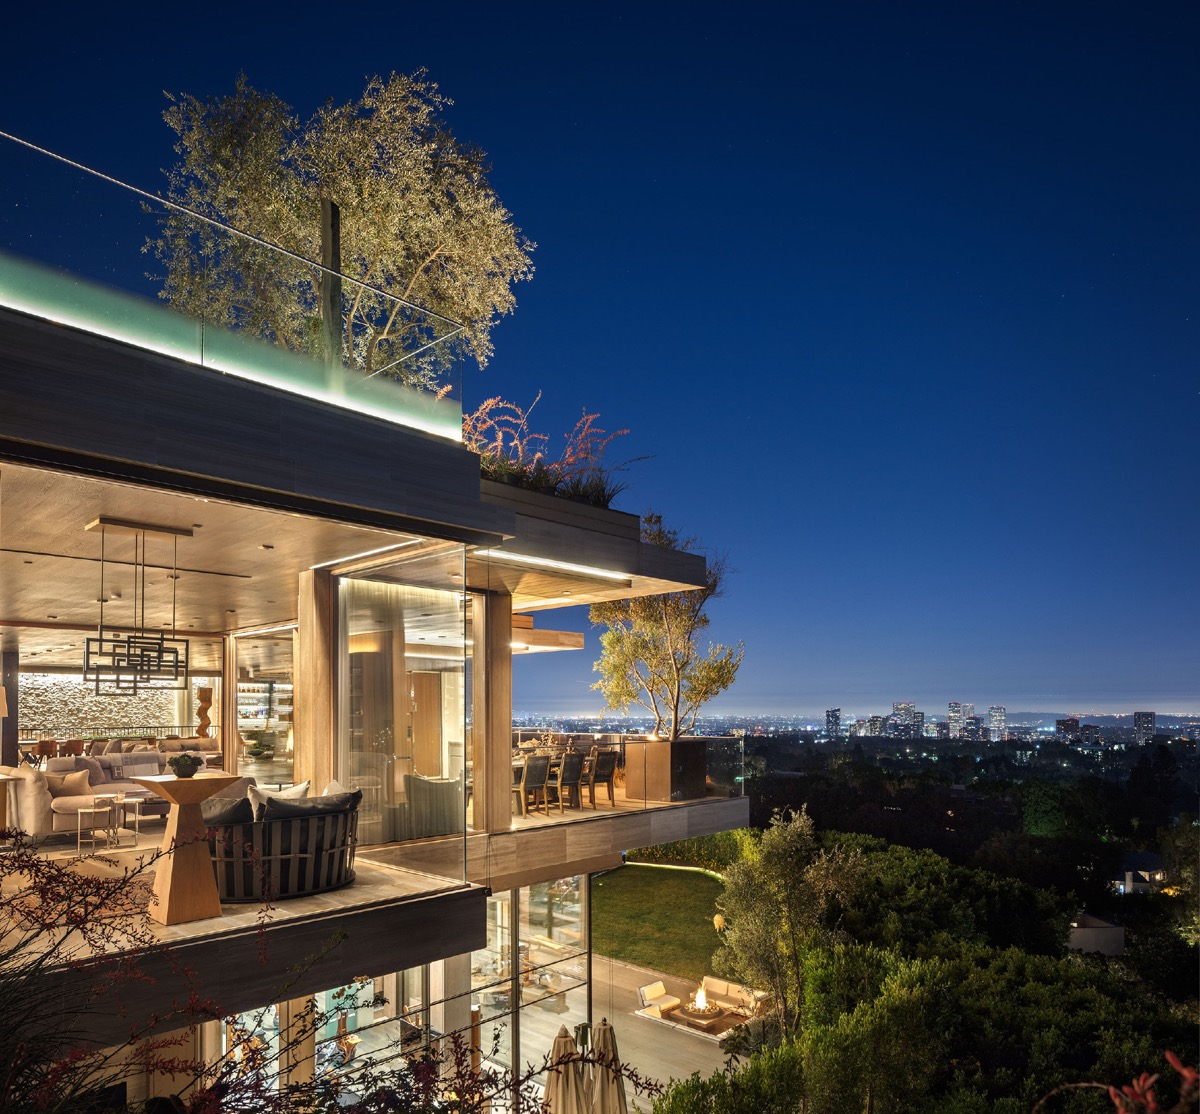 51 Luxury Living Rooms And Tips You Could Use From Them: Bel-Air Mega Mansion, 25,000 Sq Ft